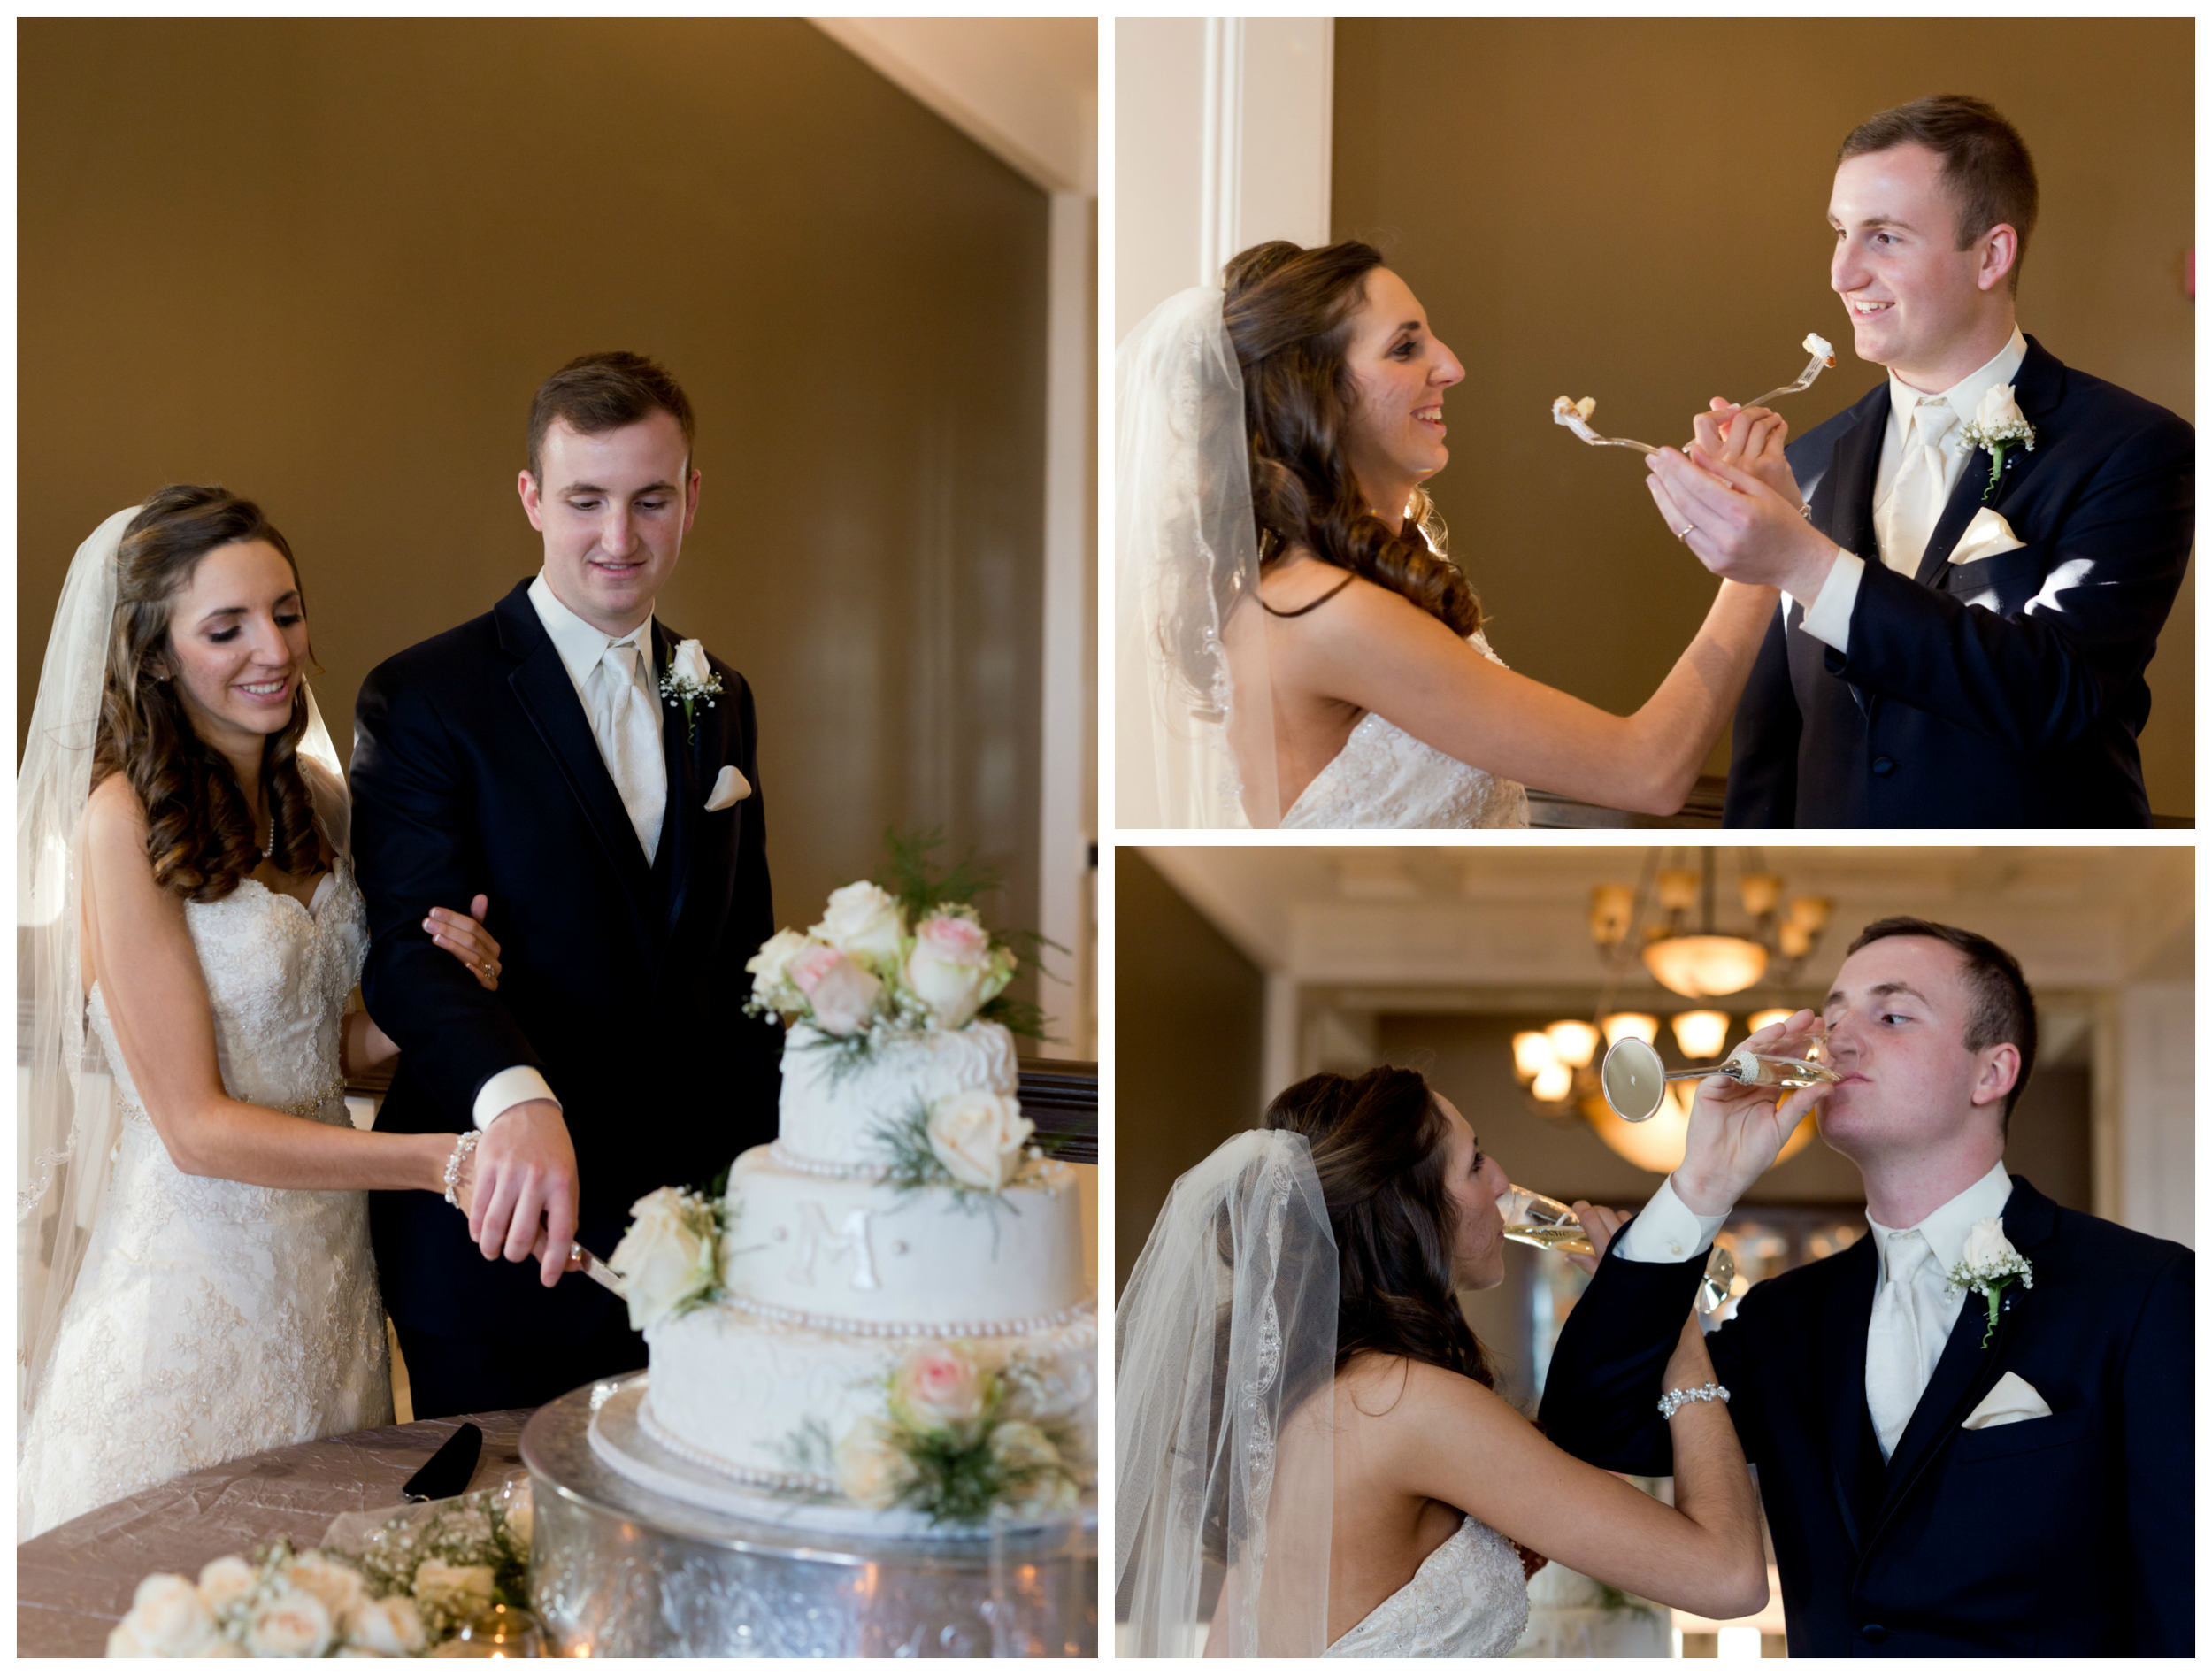 bride and groom cutting wedding cake and drinking champagne